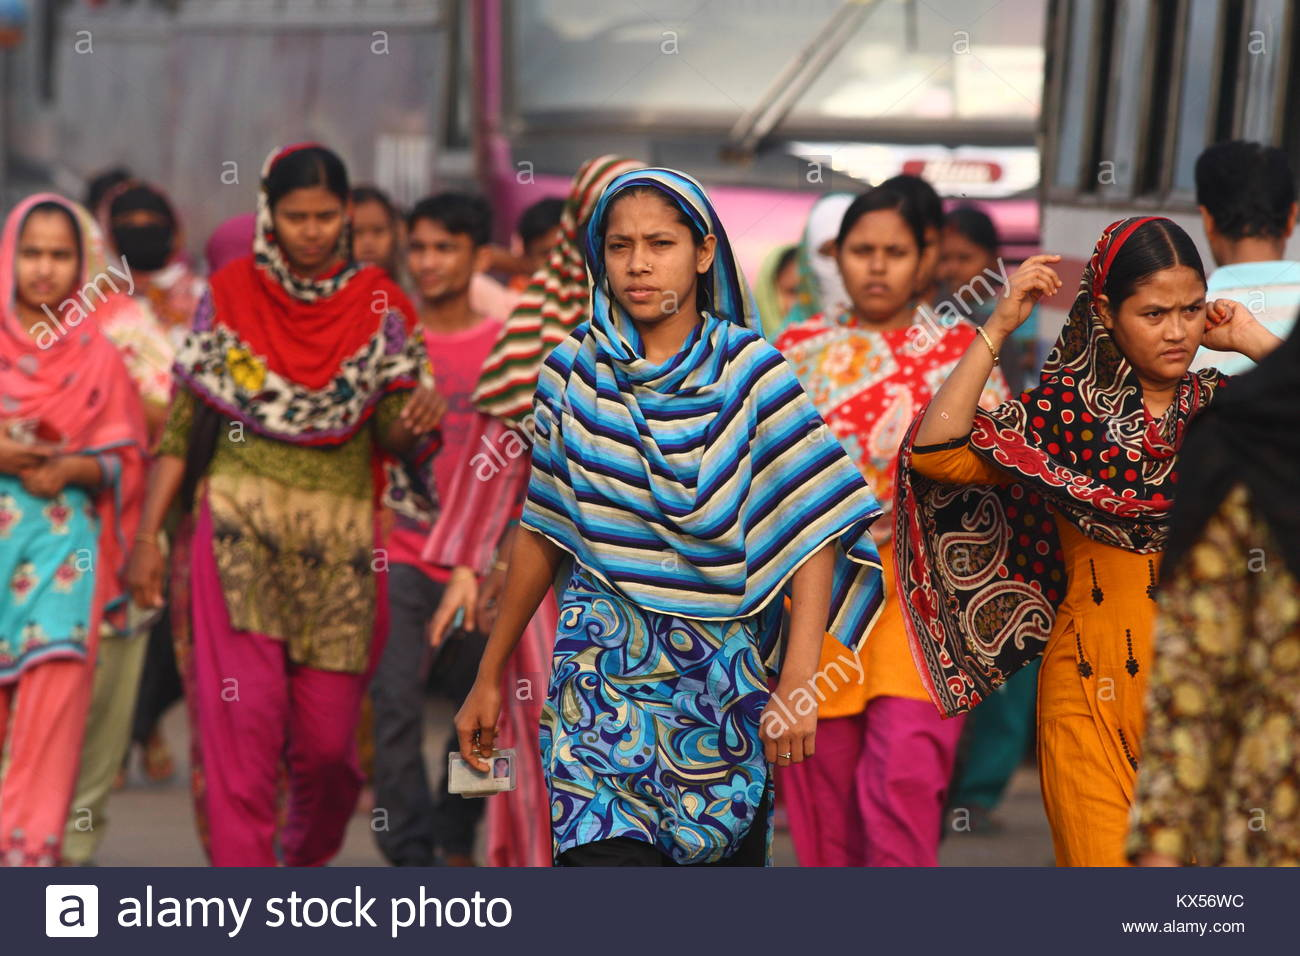 Garment worker returning to home after work, Dhaka, Bangladesh - Stock Image